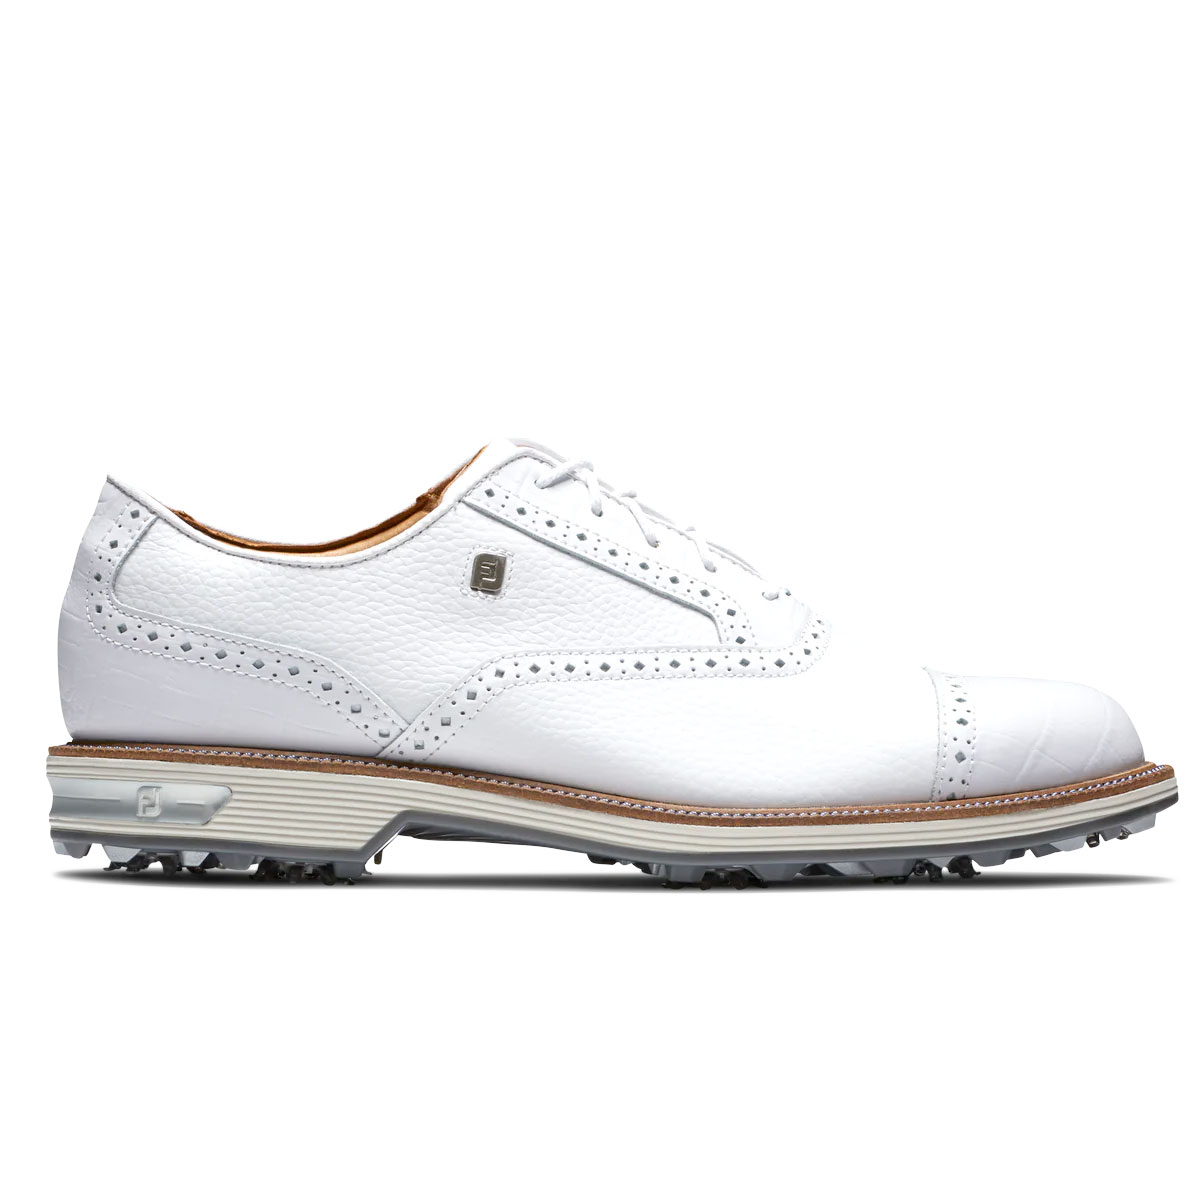 FootJoy DryJoys Premiere Series Tarlow Mens Golf Shoes  - White